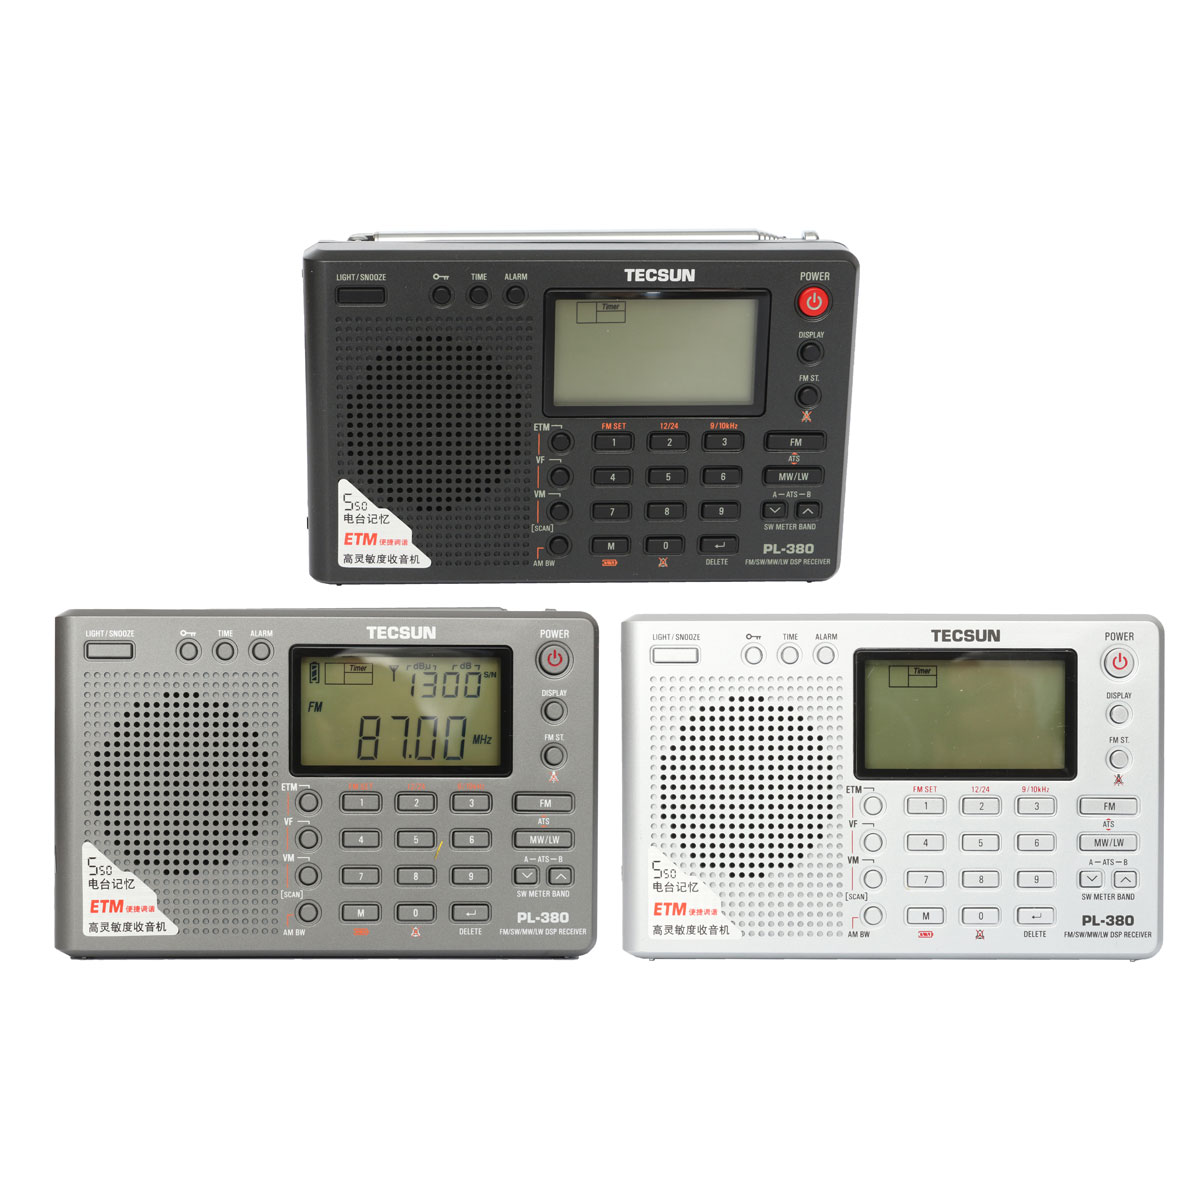 TECSUN PL-380 DSP PLL FM MW SW LW Digital Stereo Radio World-Band Receiver New 135x86x29mm 3 Colors 7 Tuning Mode Selectable tecsun pl 600 digital tuning full band fm mw sw sbb air pll synthesized stereo radio receiver 4xaa